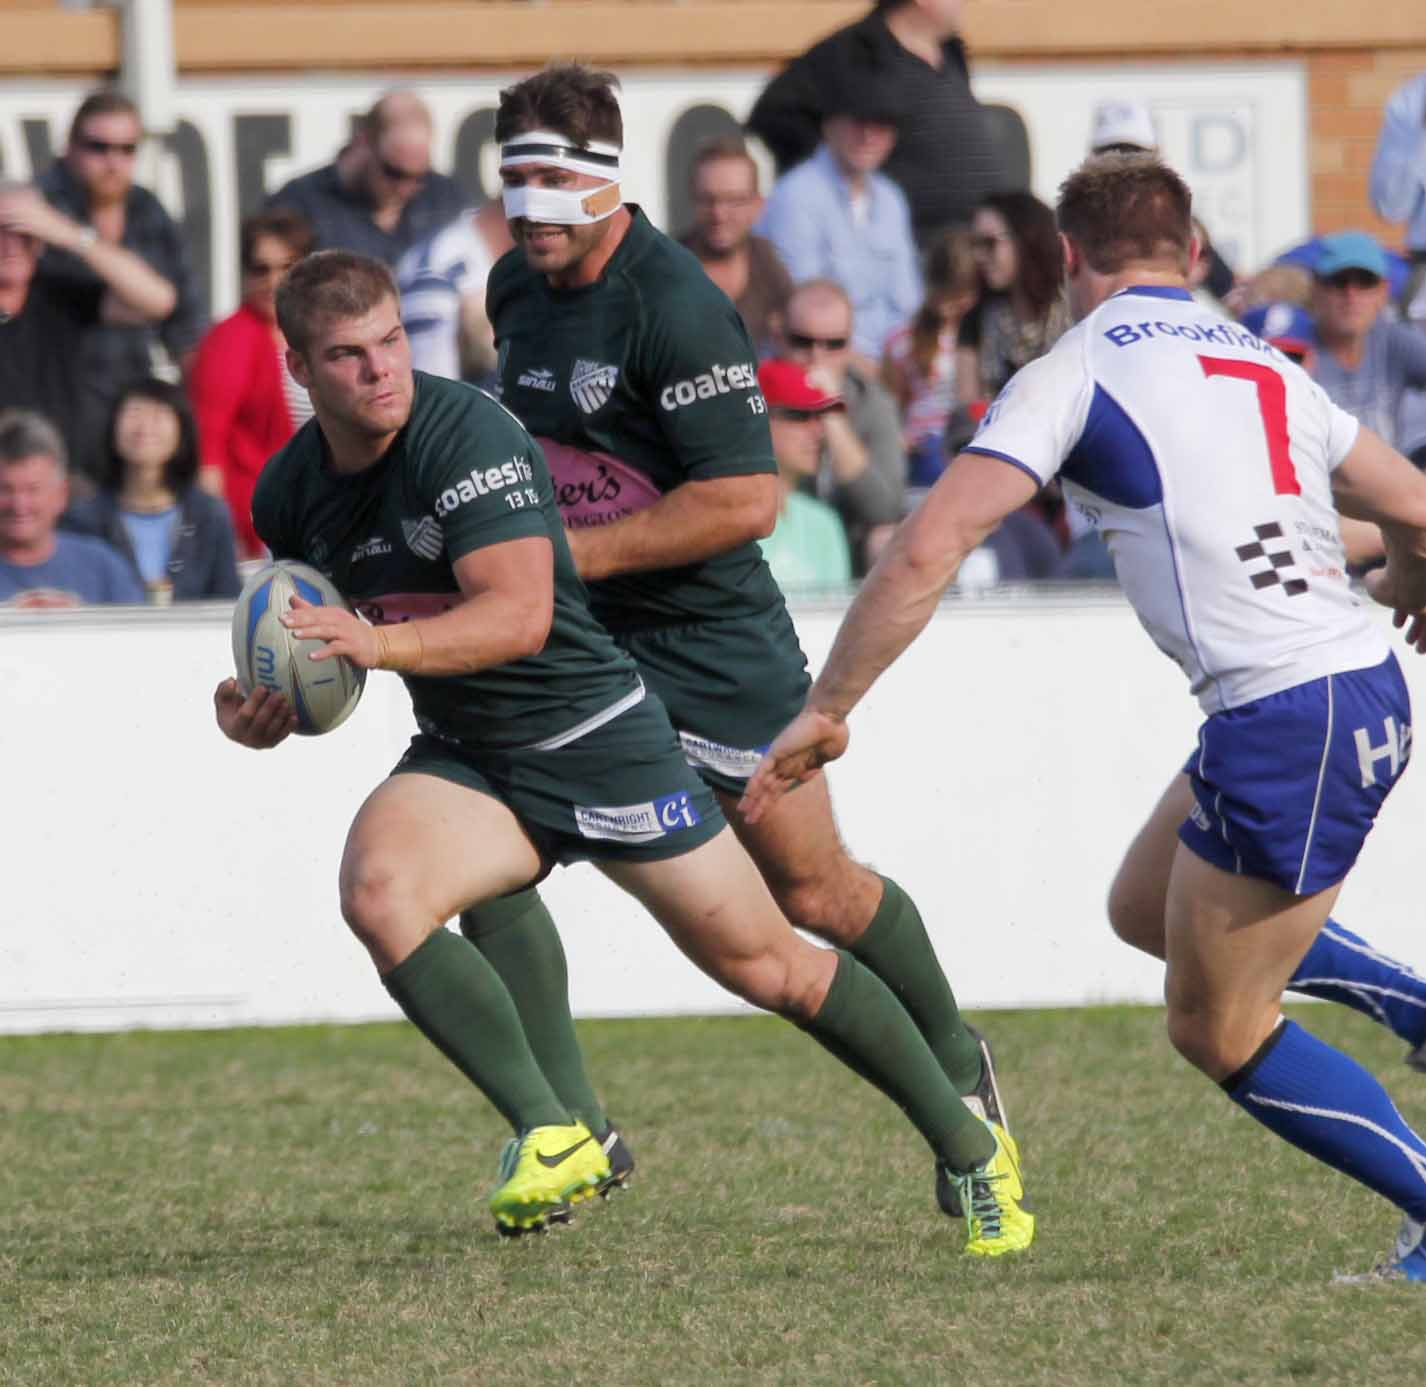 EFord and mystery partner on the fly